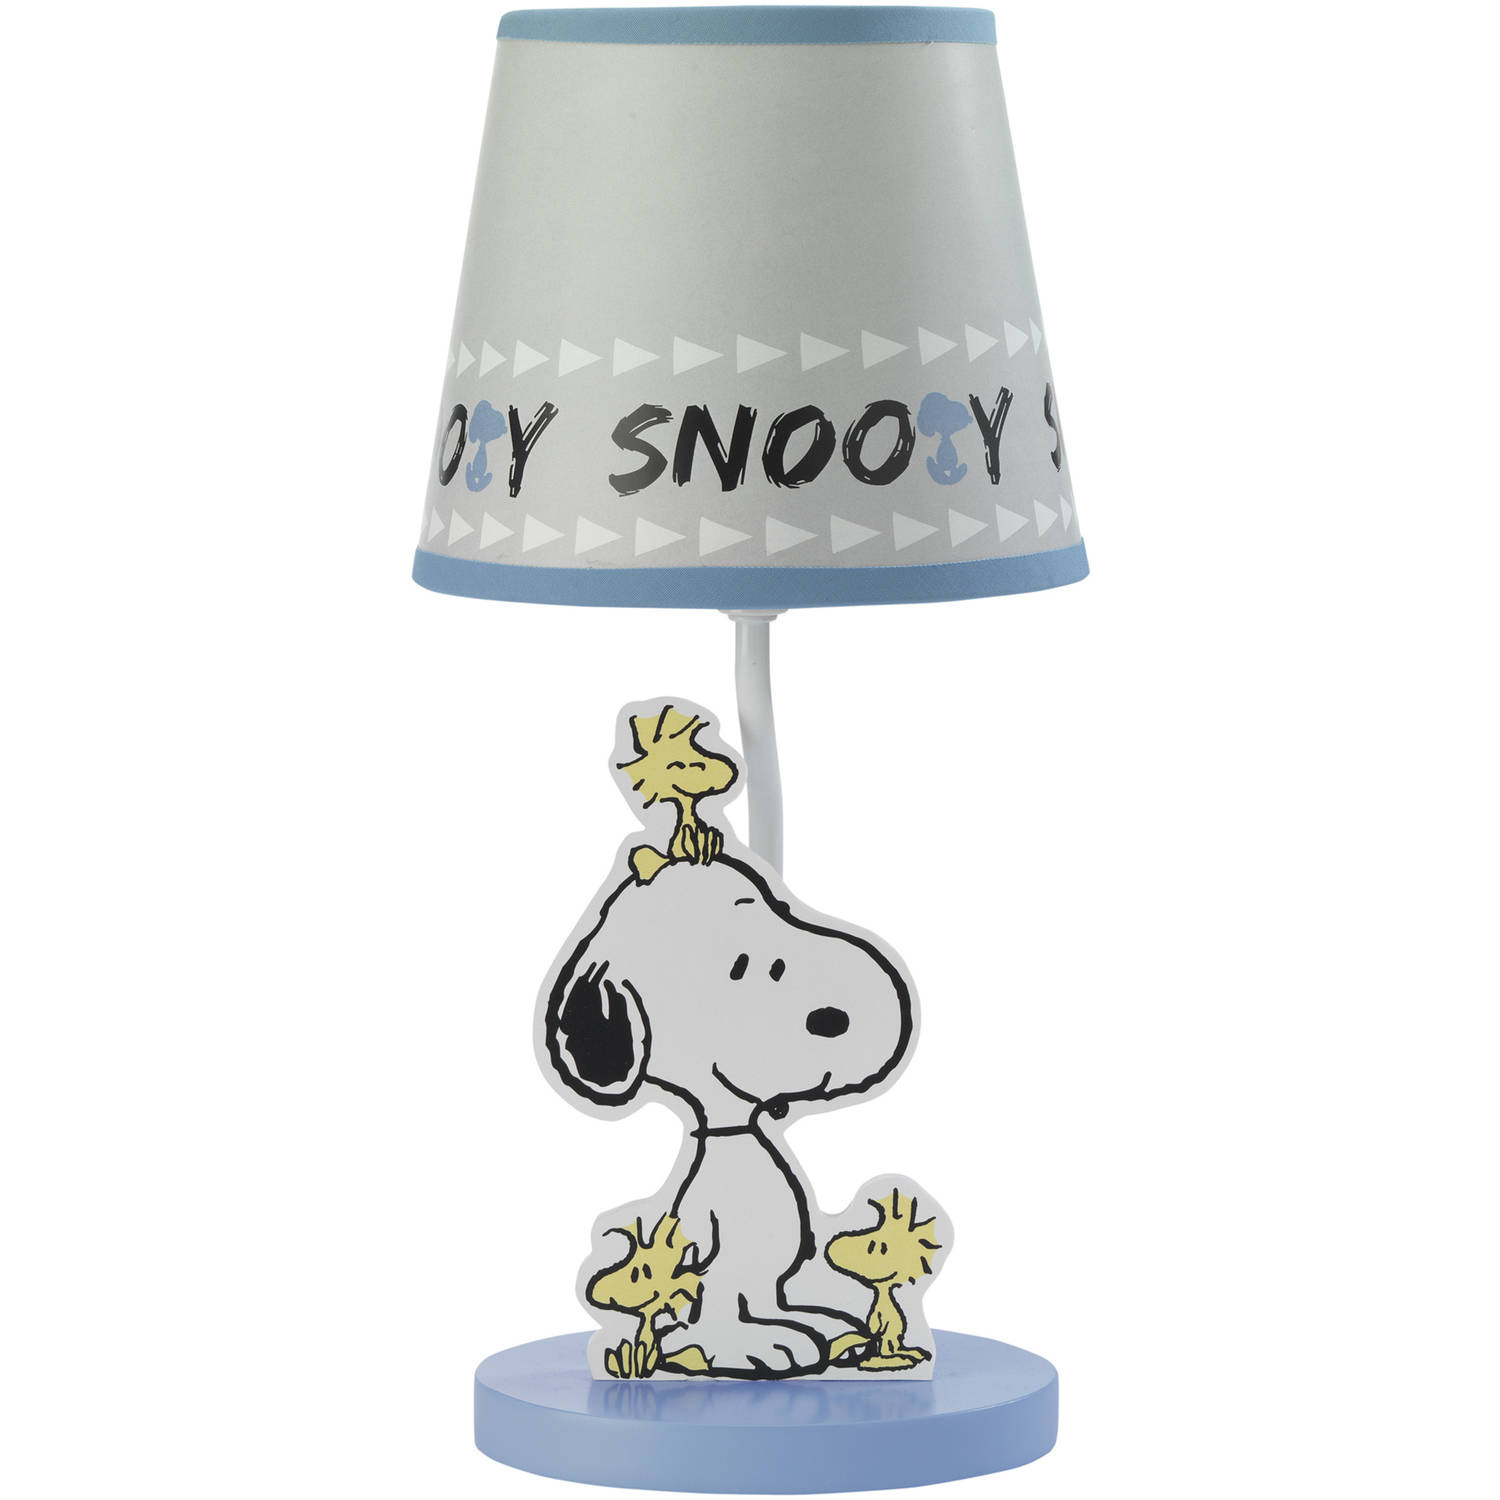 Bedtime Originals Peanuts Forever Snoopy Lamp with Shade and Bulb, Blue/Gray